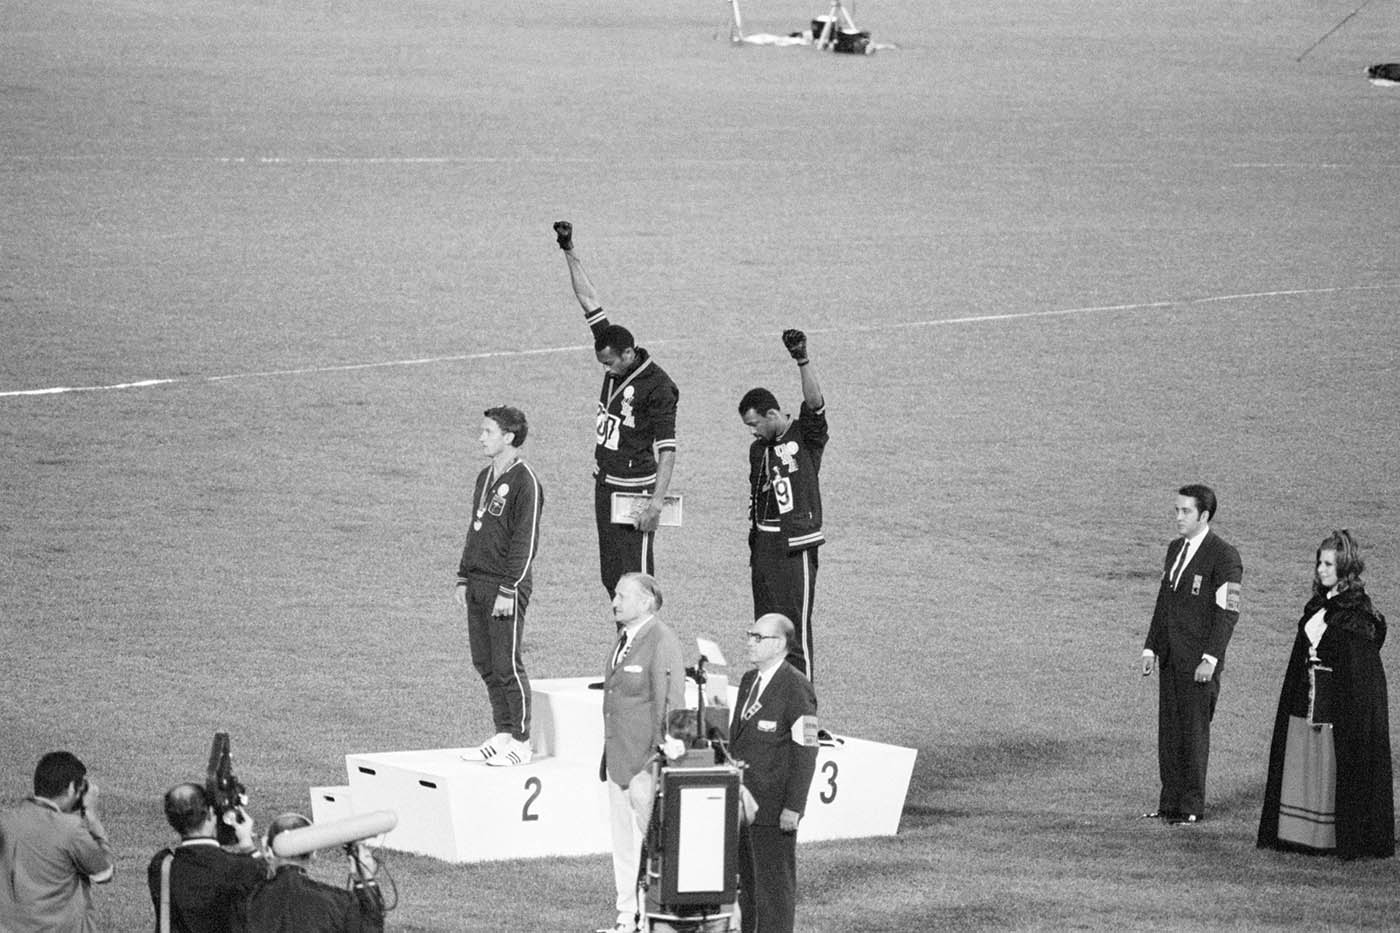 The Black Power salute at the 1968 Mexico Olympics. John Carlos later said that the gesture wasn't about racial issues